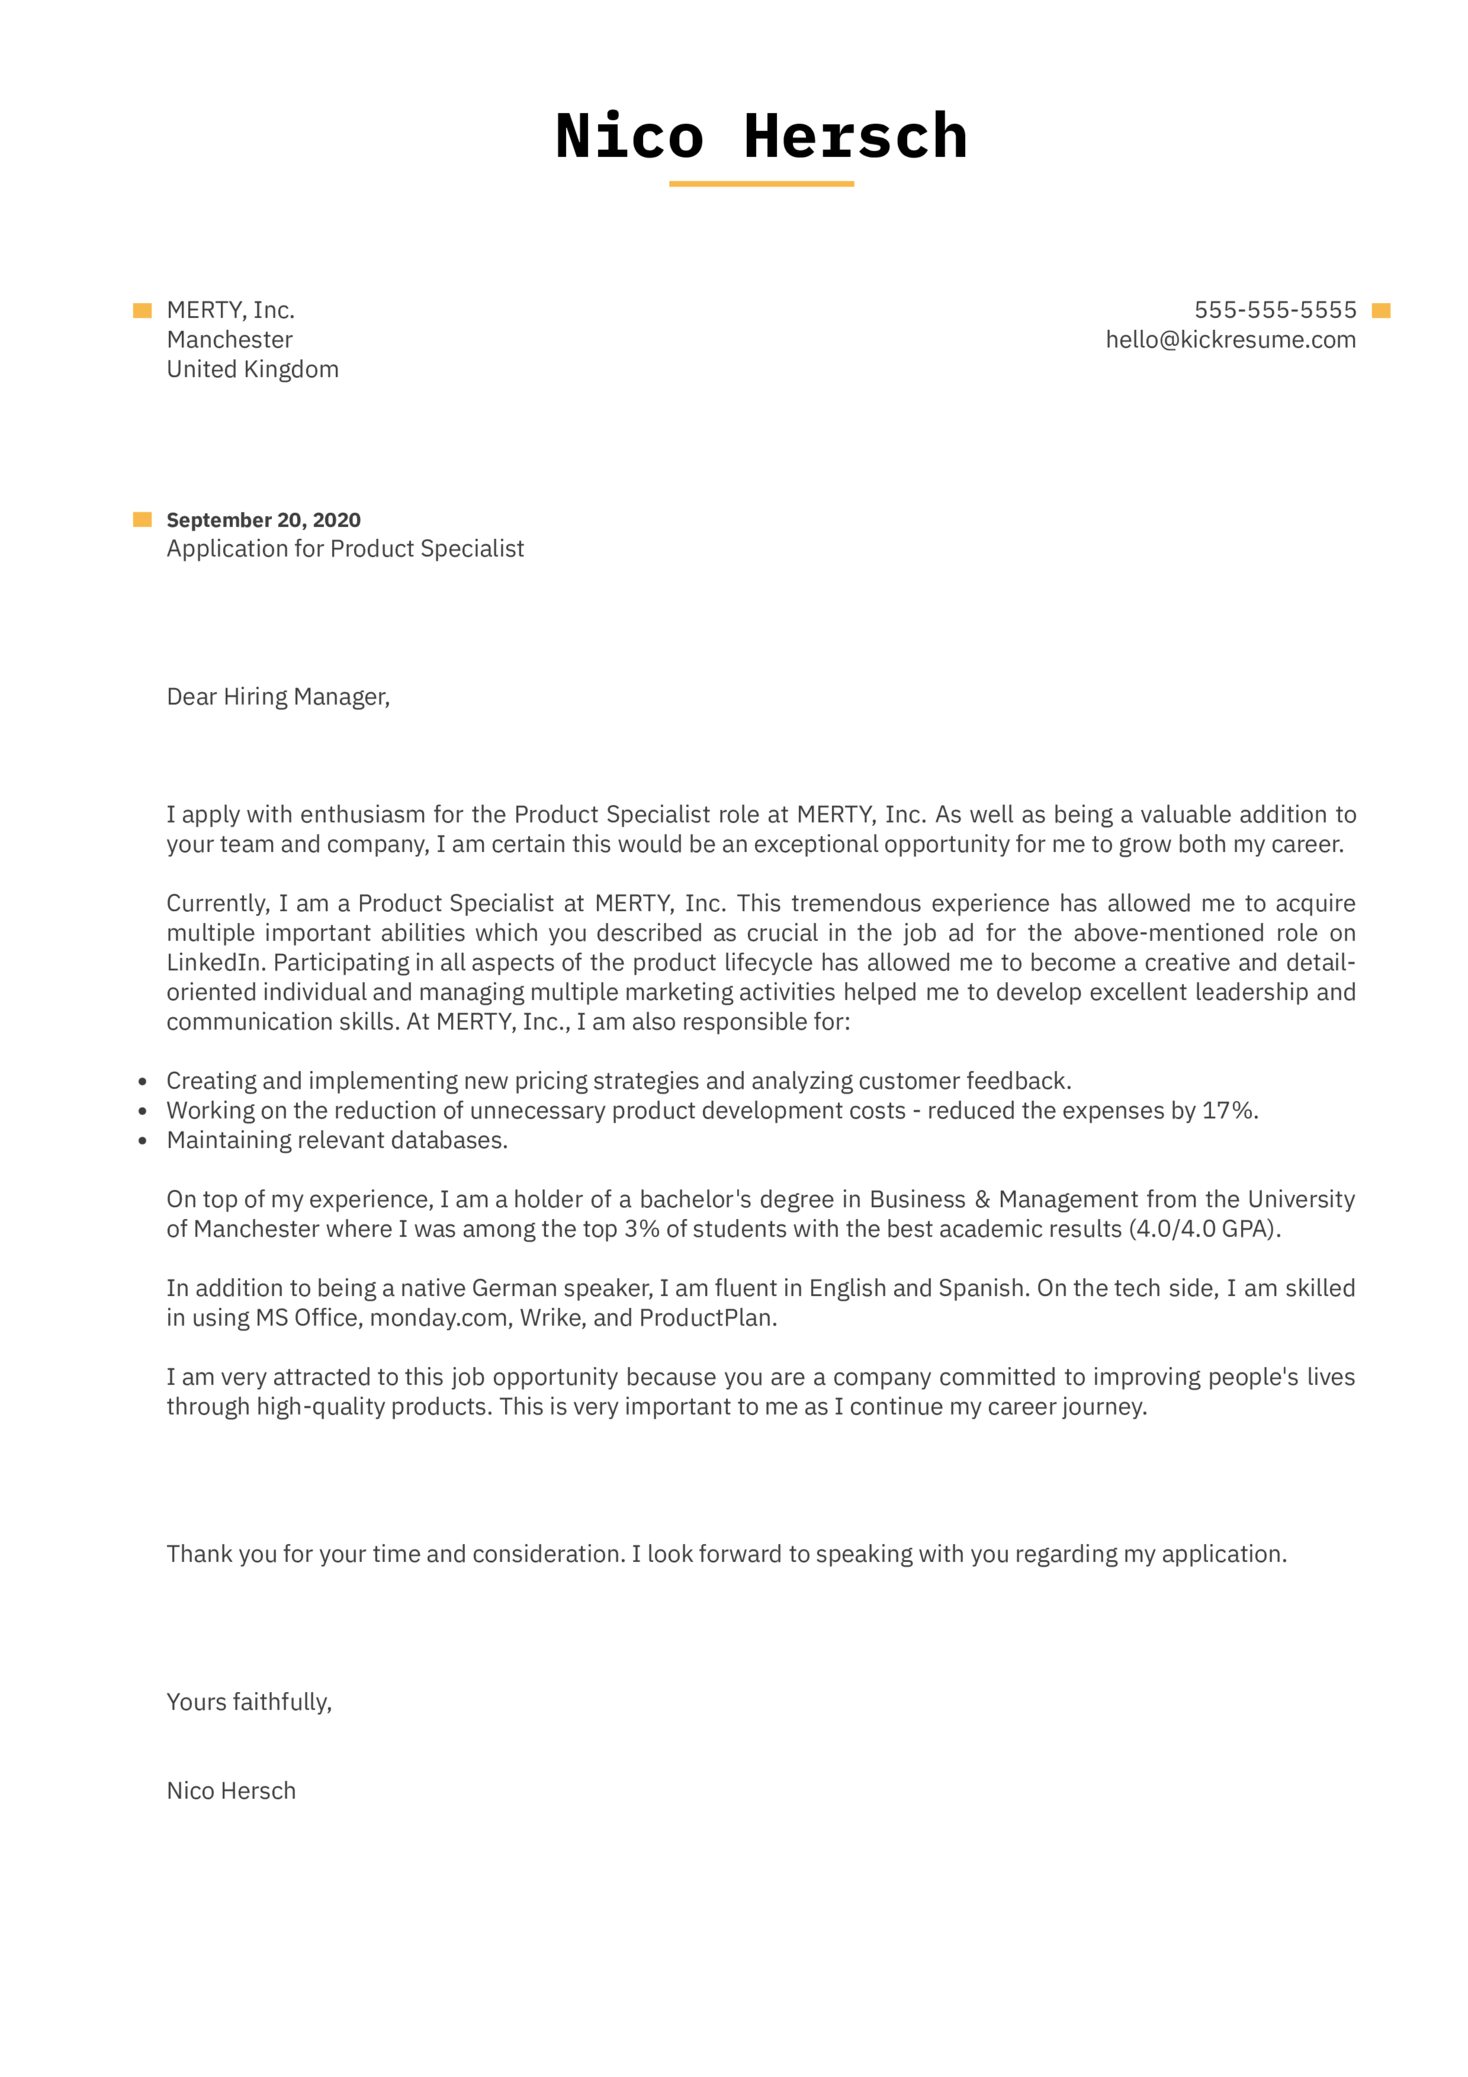 Product Specialist Cover Letter Example